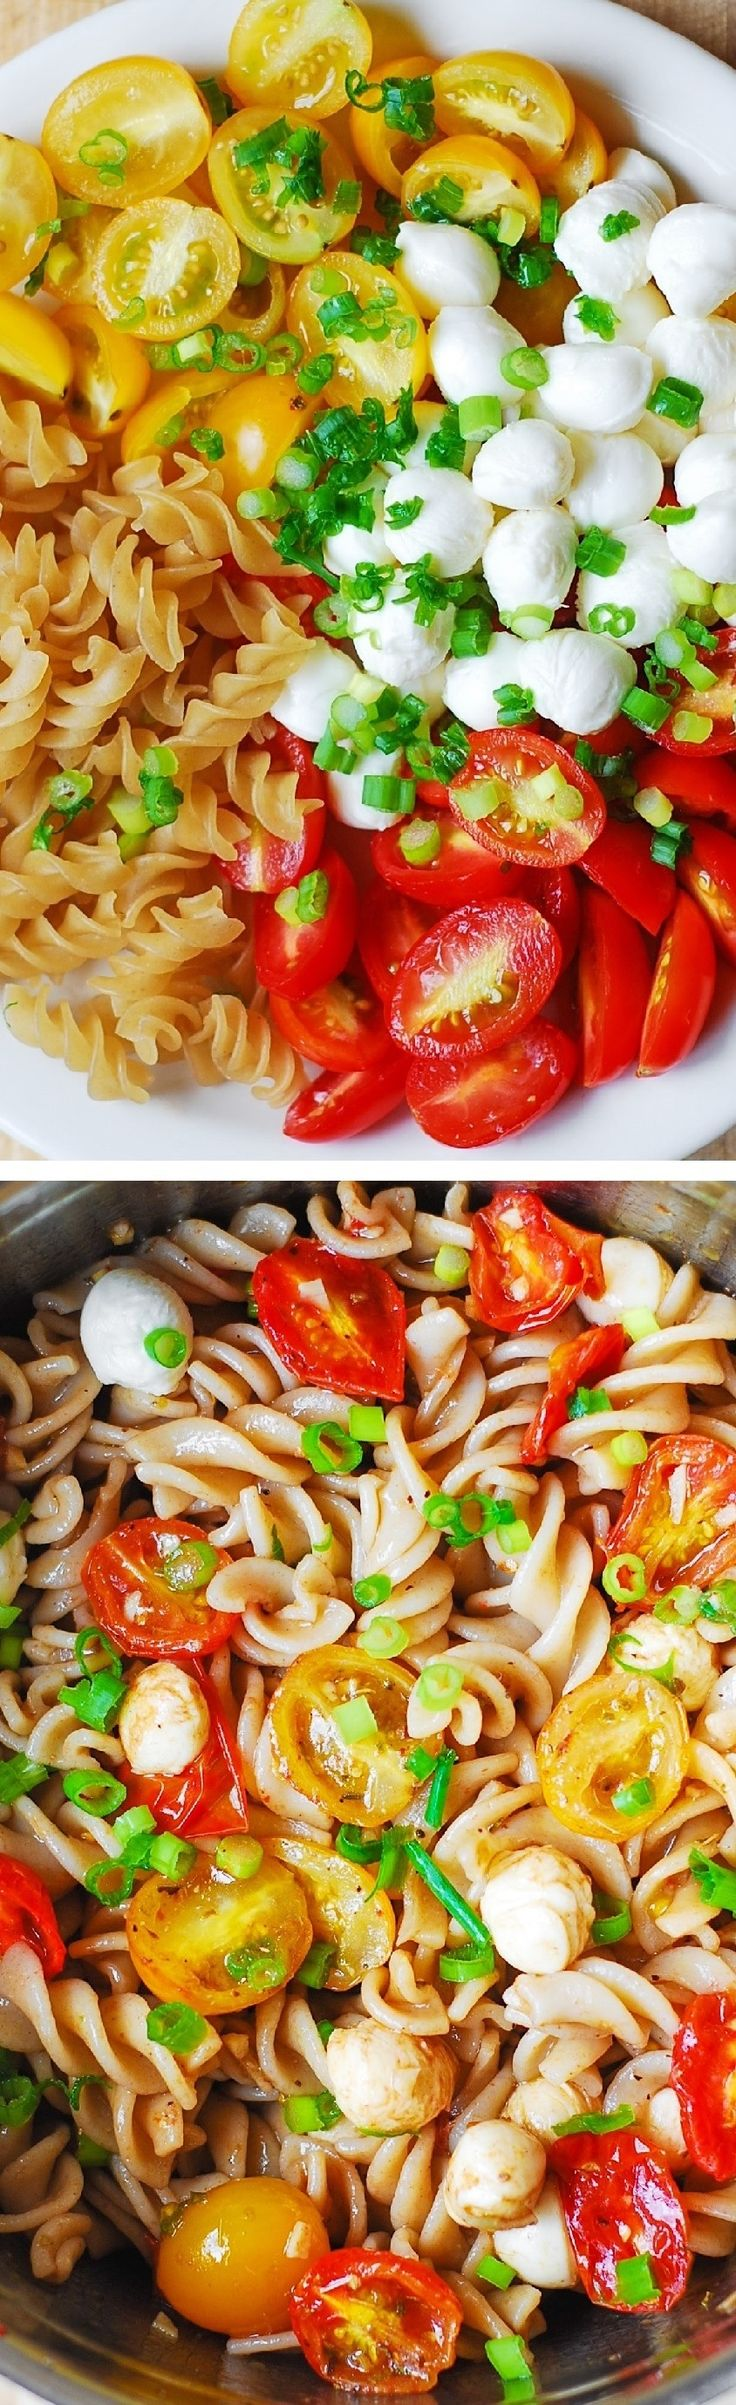 Pasta Salad with Roasted Tomatoes and Mozzarella - healthy, light, vegetarian side dish! Perfect for Summer cookouts, picnics! | @andwhatelse